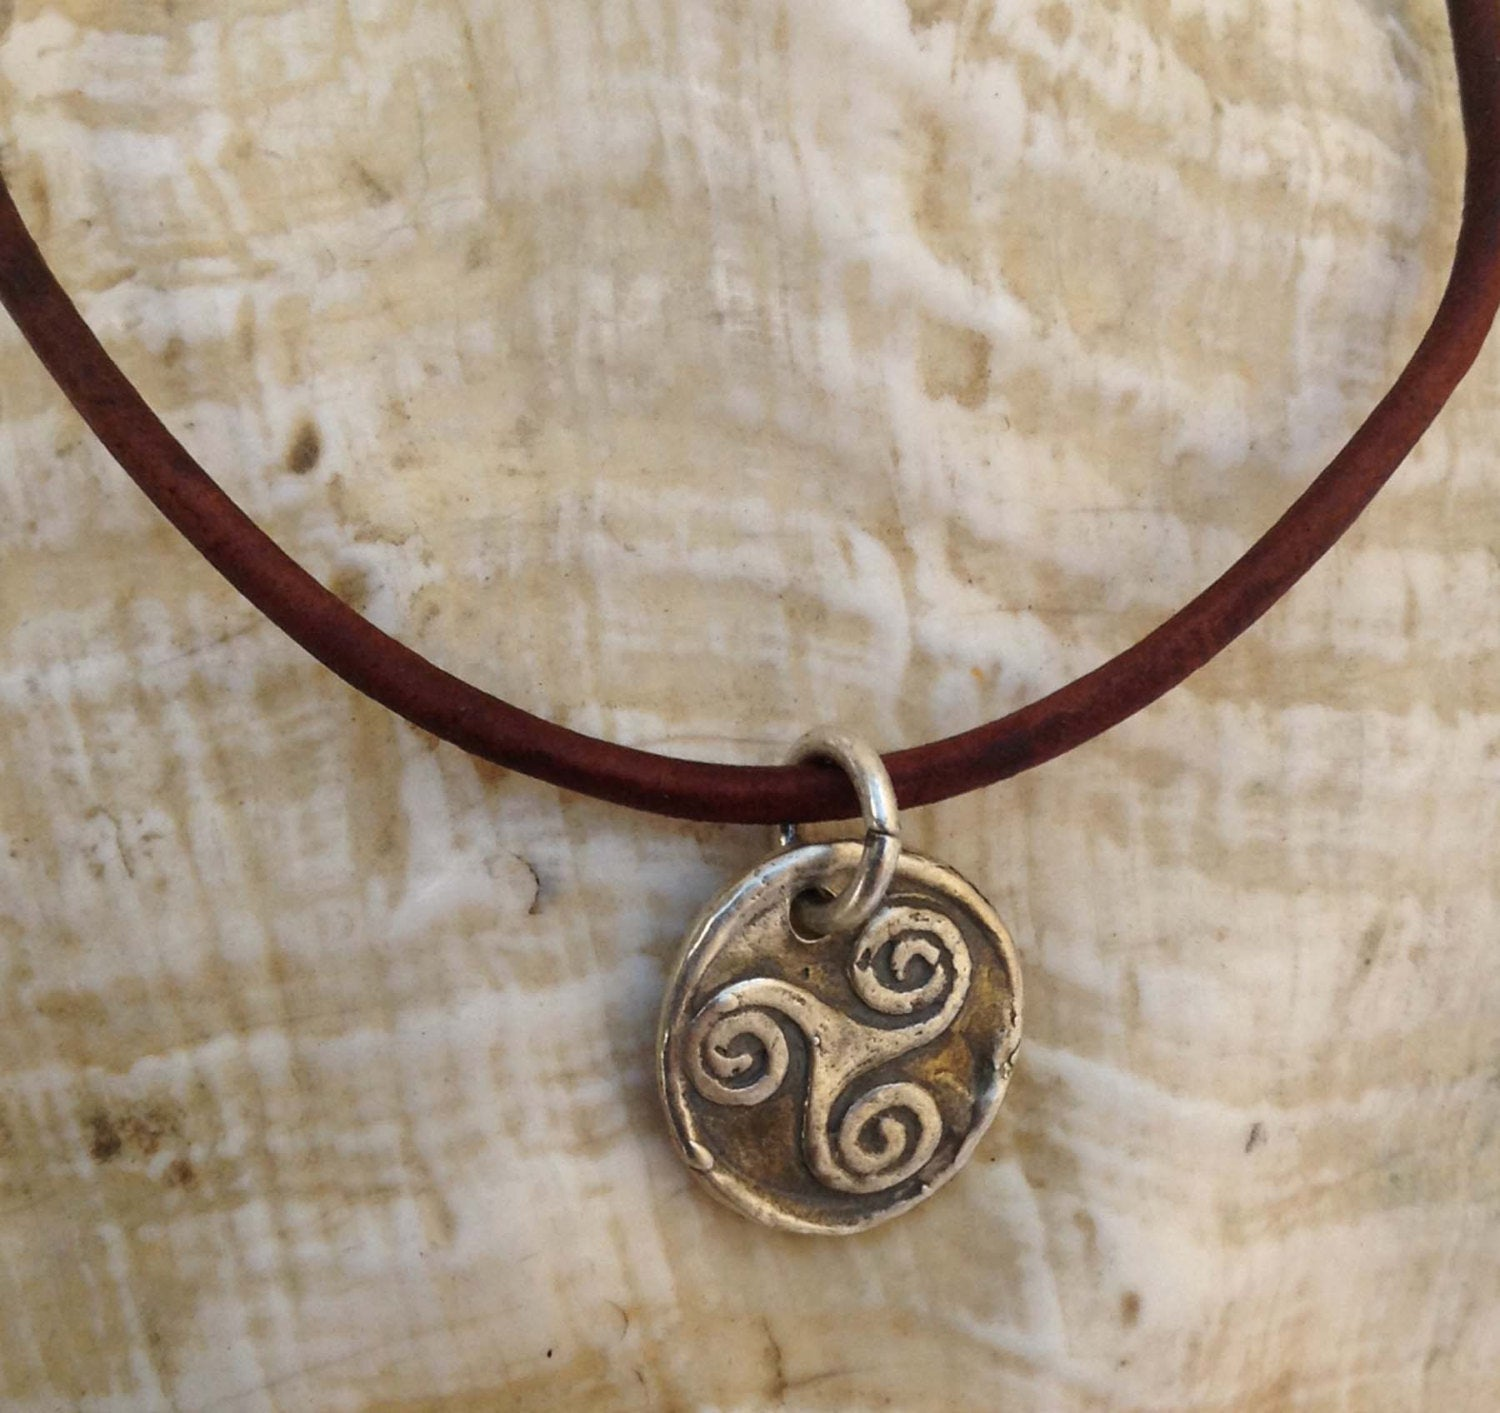 Handmade Sterling Silver Celtic Triple Spiral Charm Adjustable Leather Bracelet